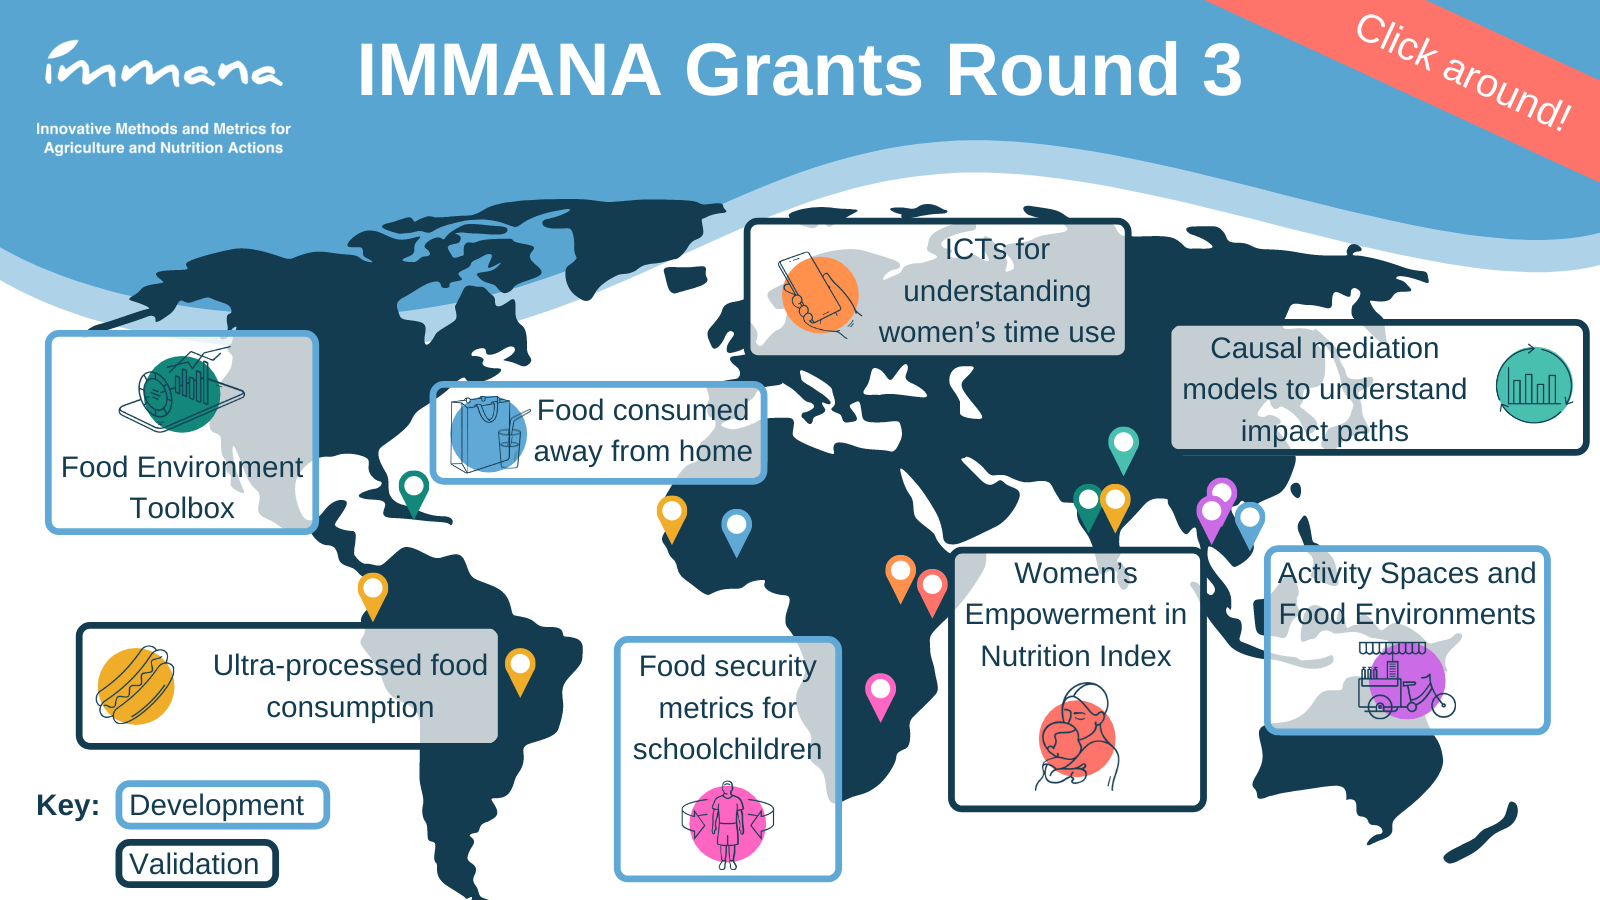 IMMANA Grants Round 3 announcement graphic